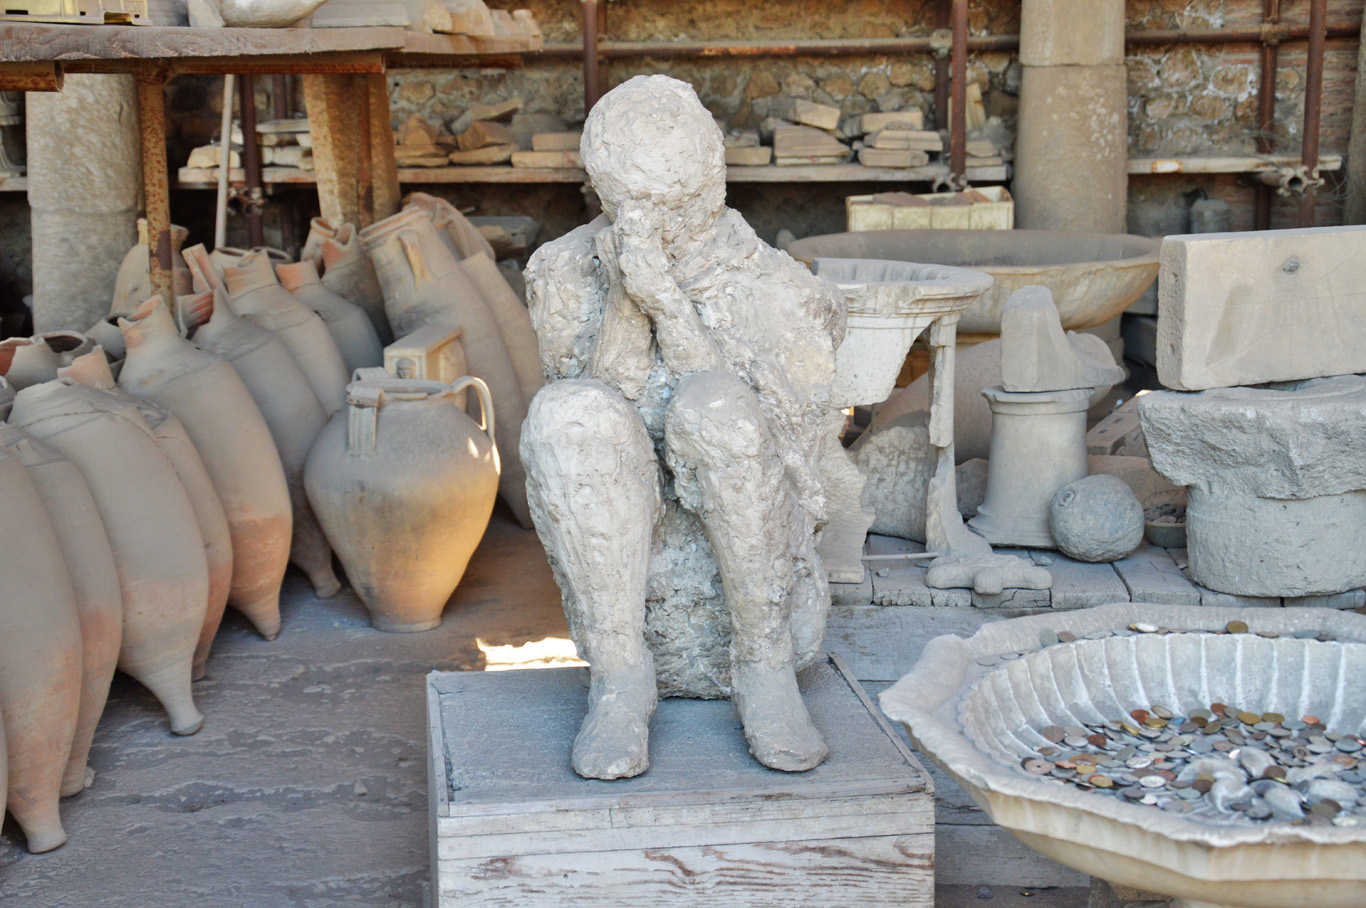 The casts of the victims